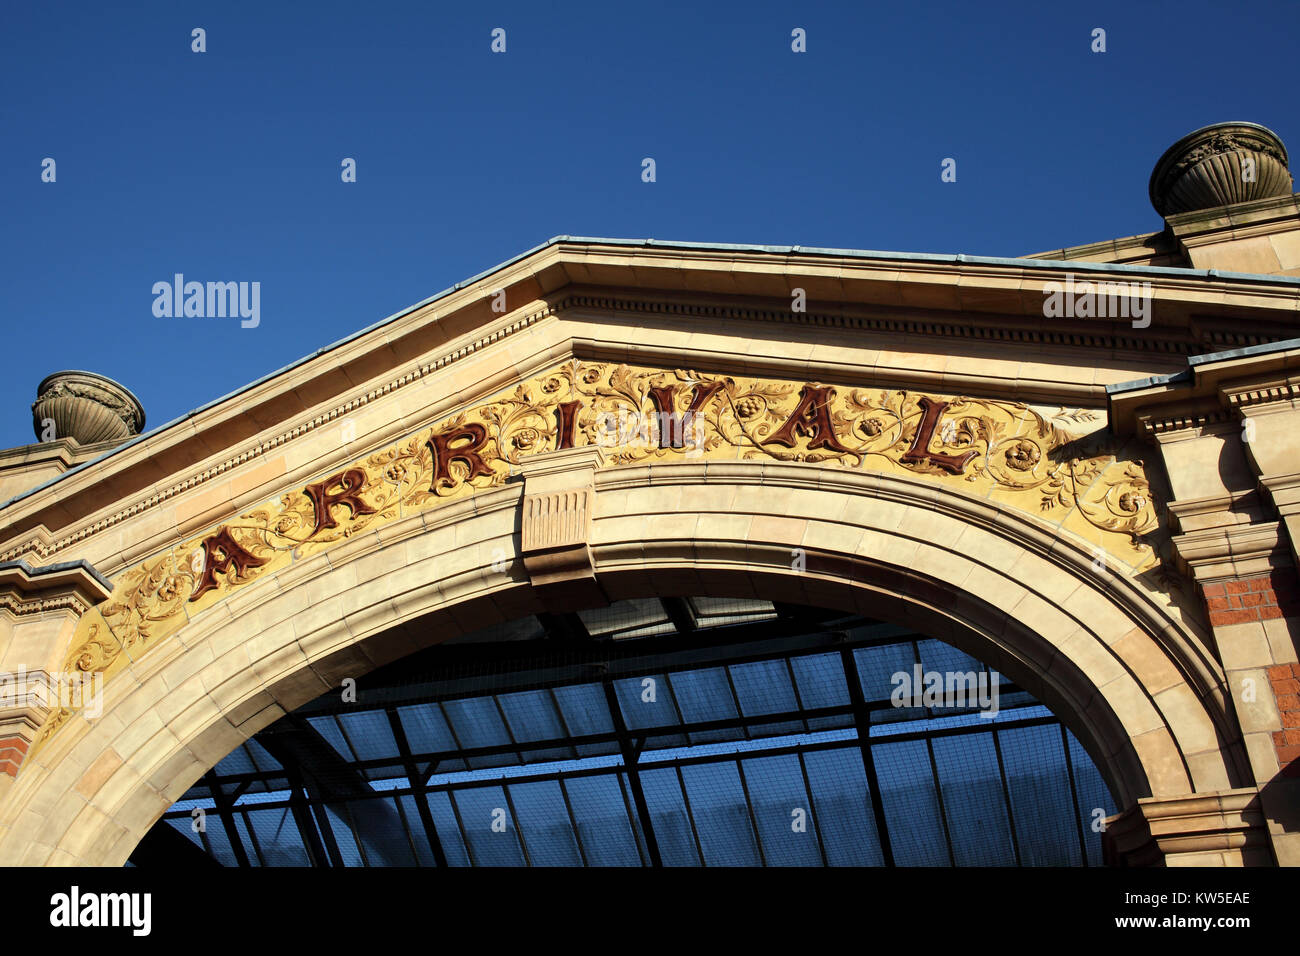 An elaborate archway at the entrance to the late-Victorian London Road railway station, Leicester. - Stock Image